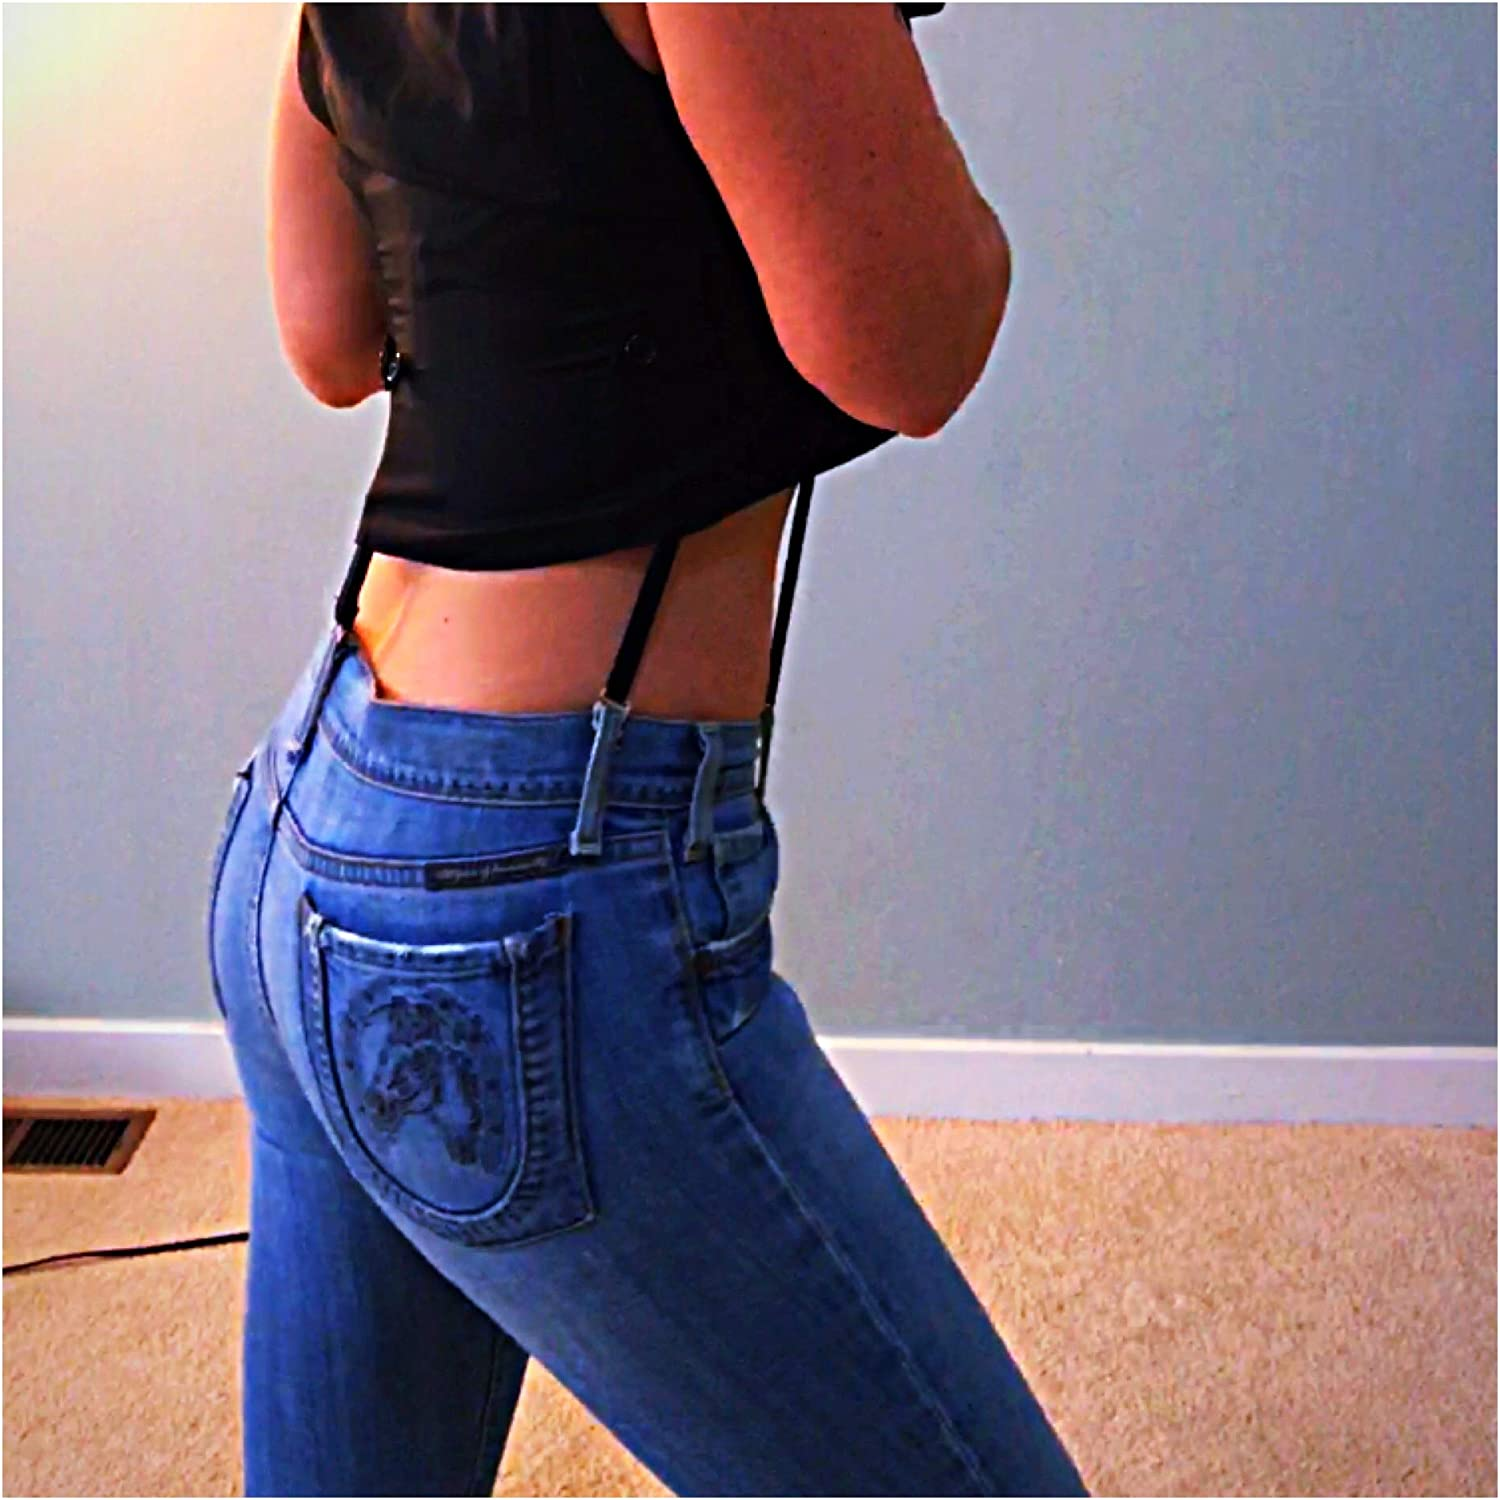 No Suspender Clips Black Y-Back Butt Lifting Womens Undergarment Suspenders for Pants with Belt Loops 5 Hooks